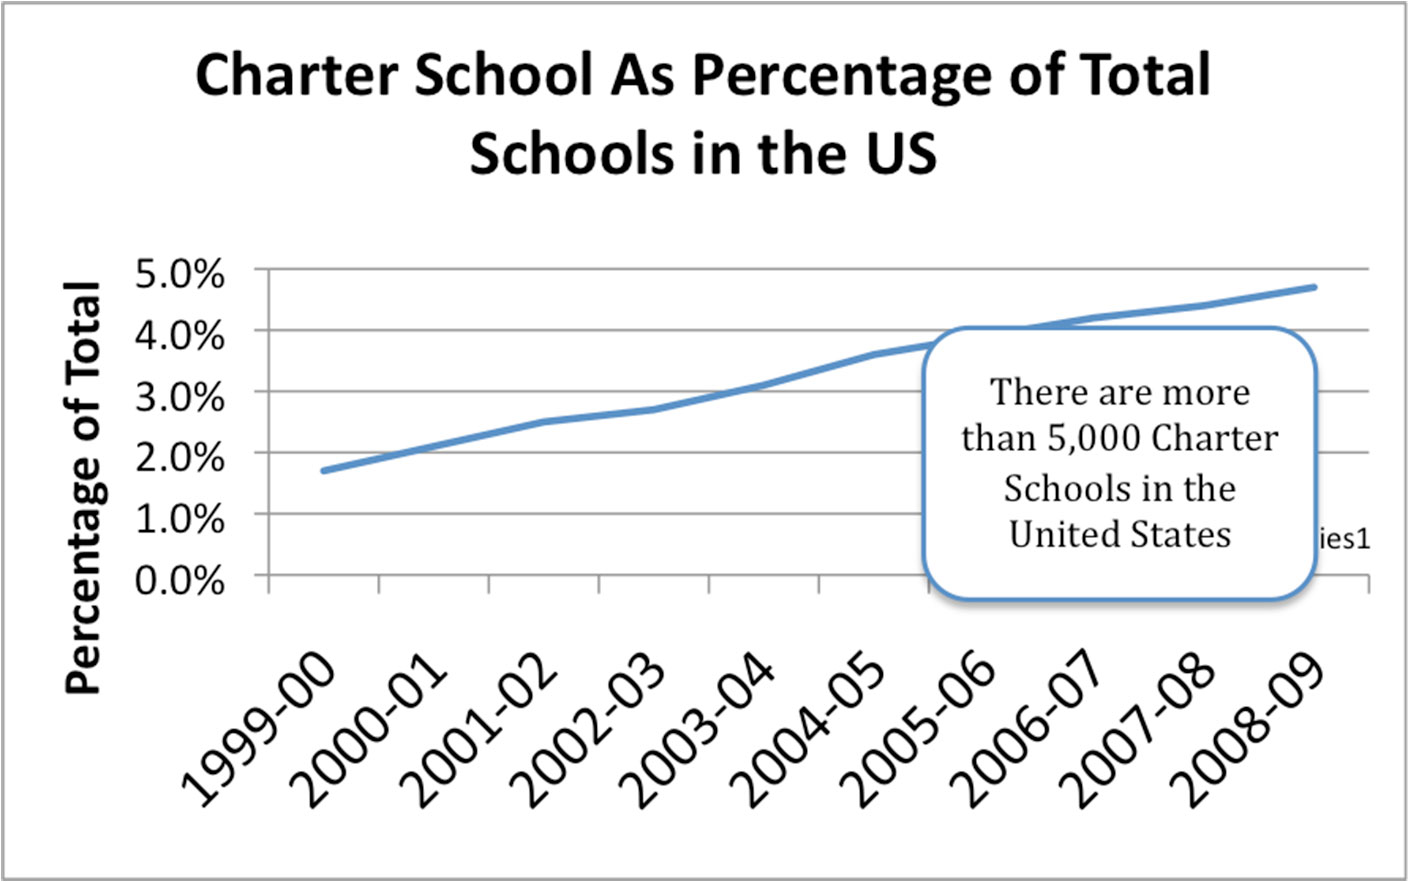 Are charter schools better?